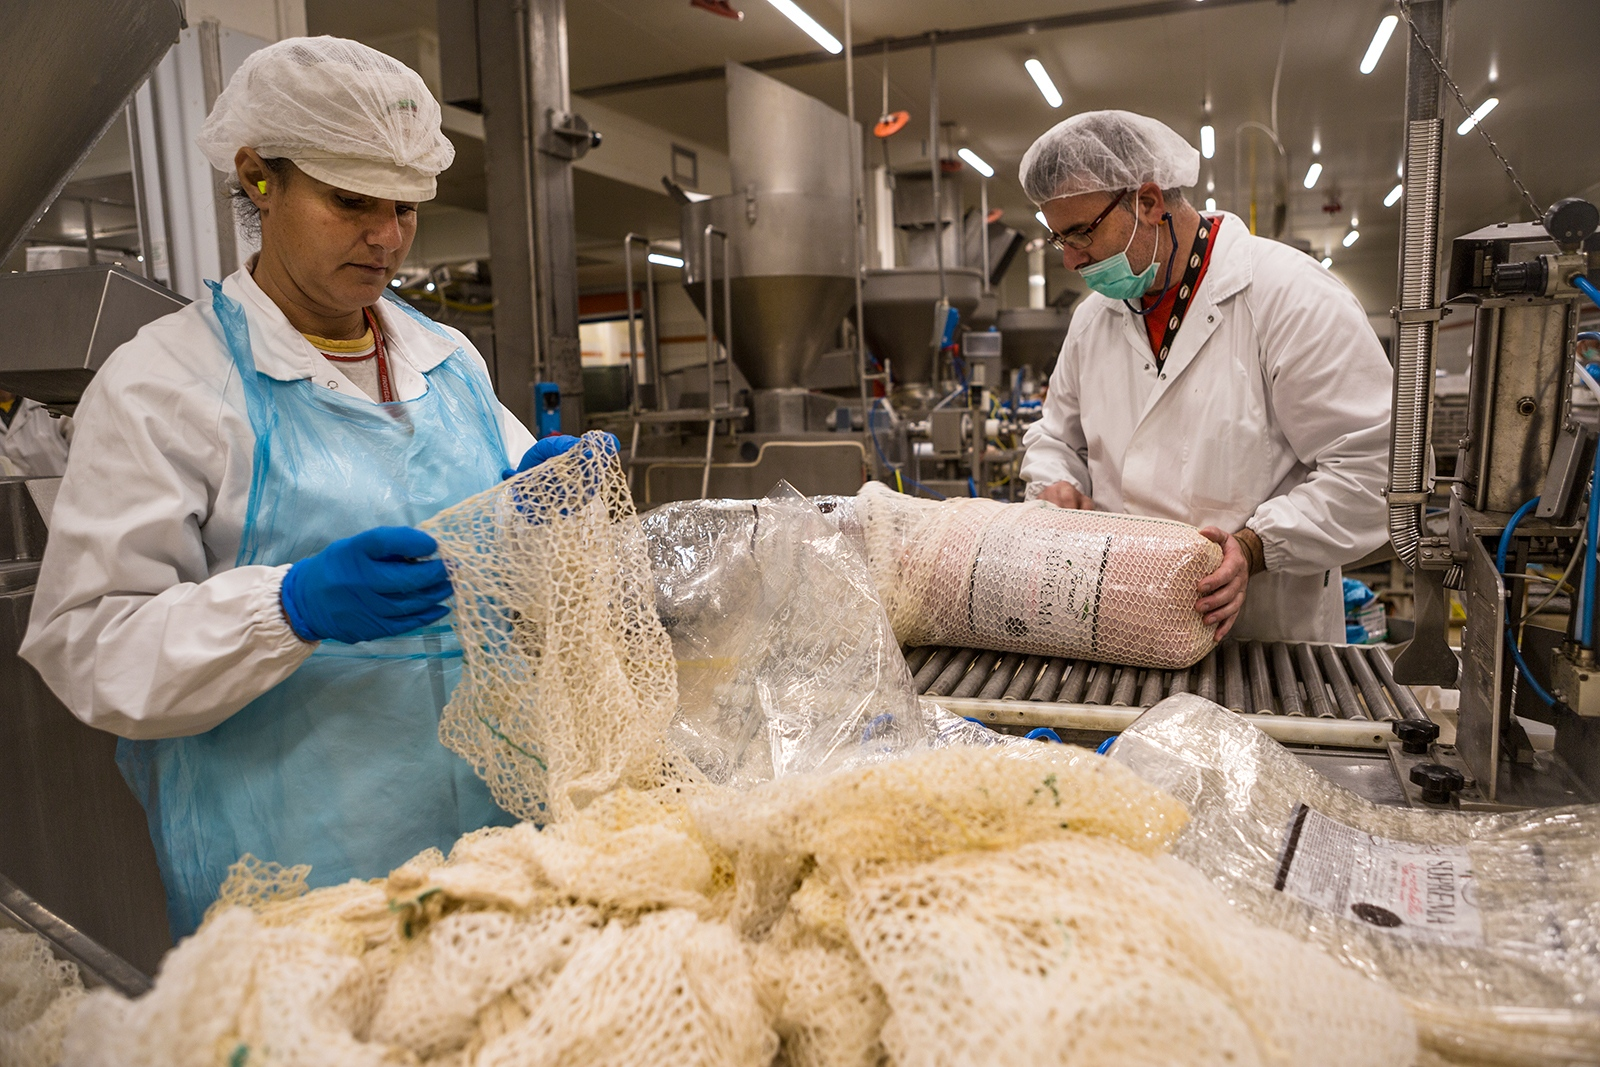 Workers at a Meatpacking Plant